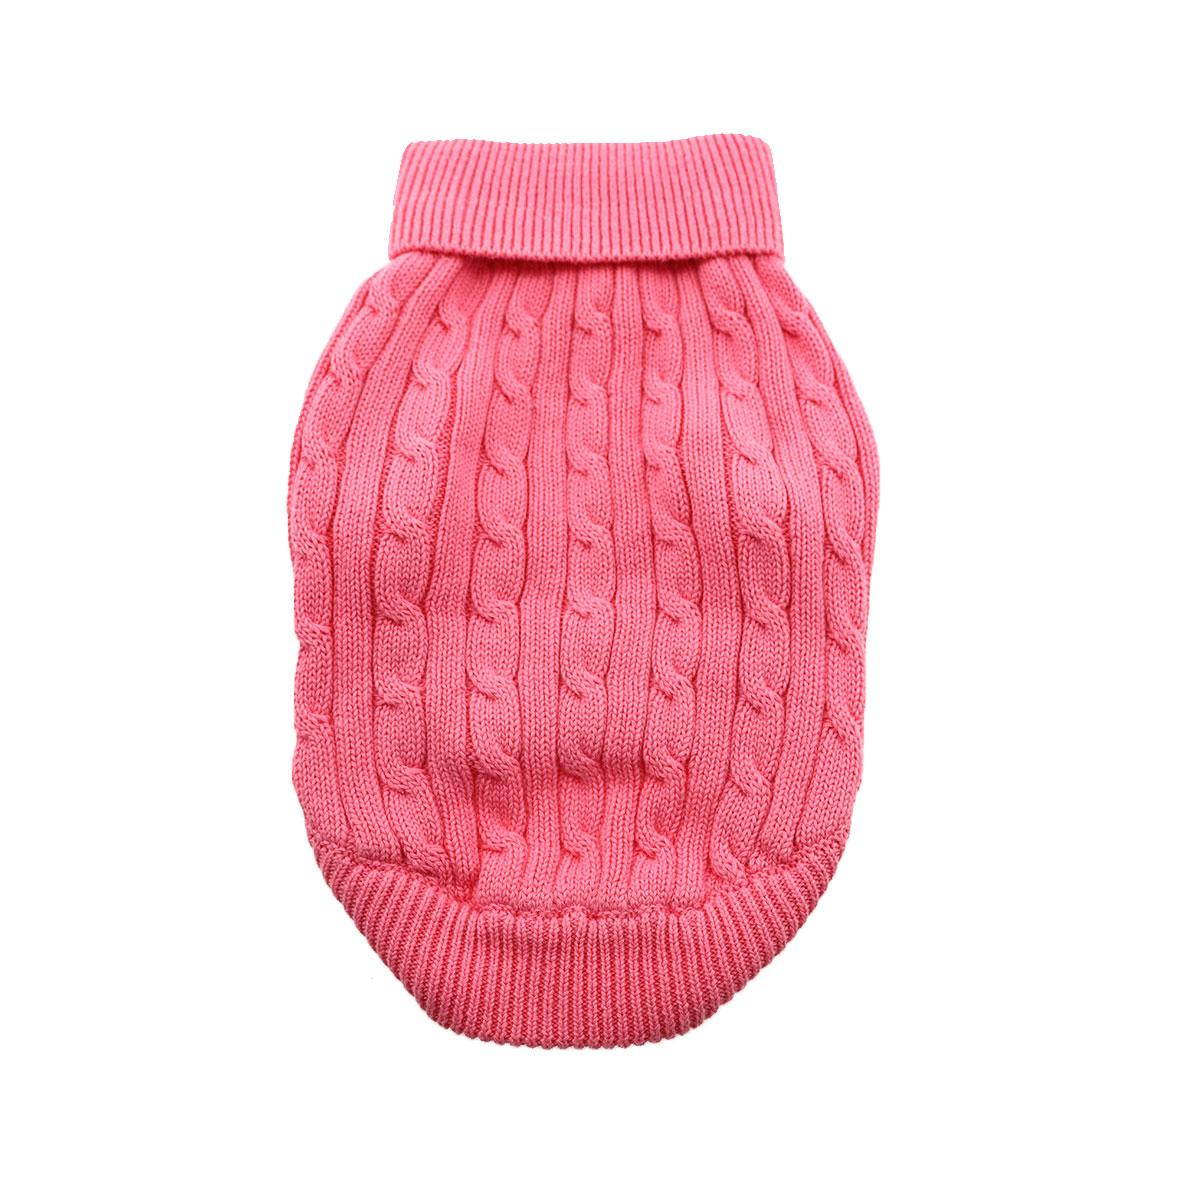 Doggie Design Cotton Dog Sweater, Cable Knit Candy Pink, Small